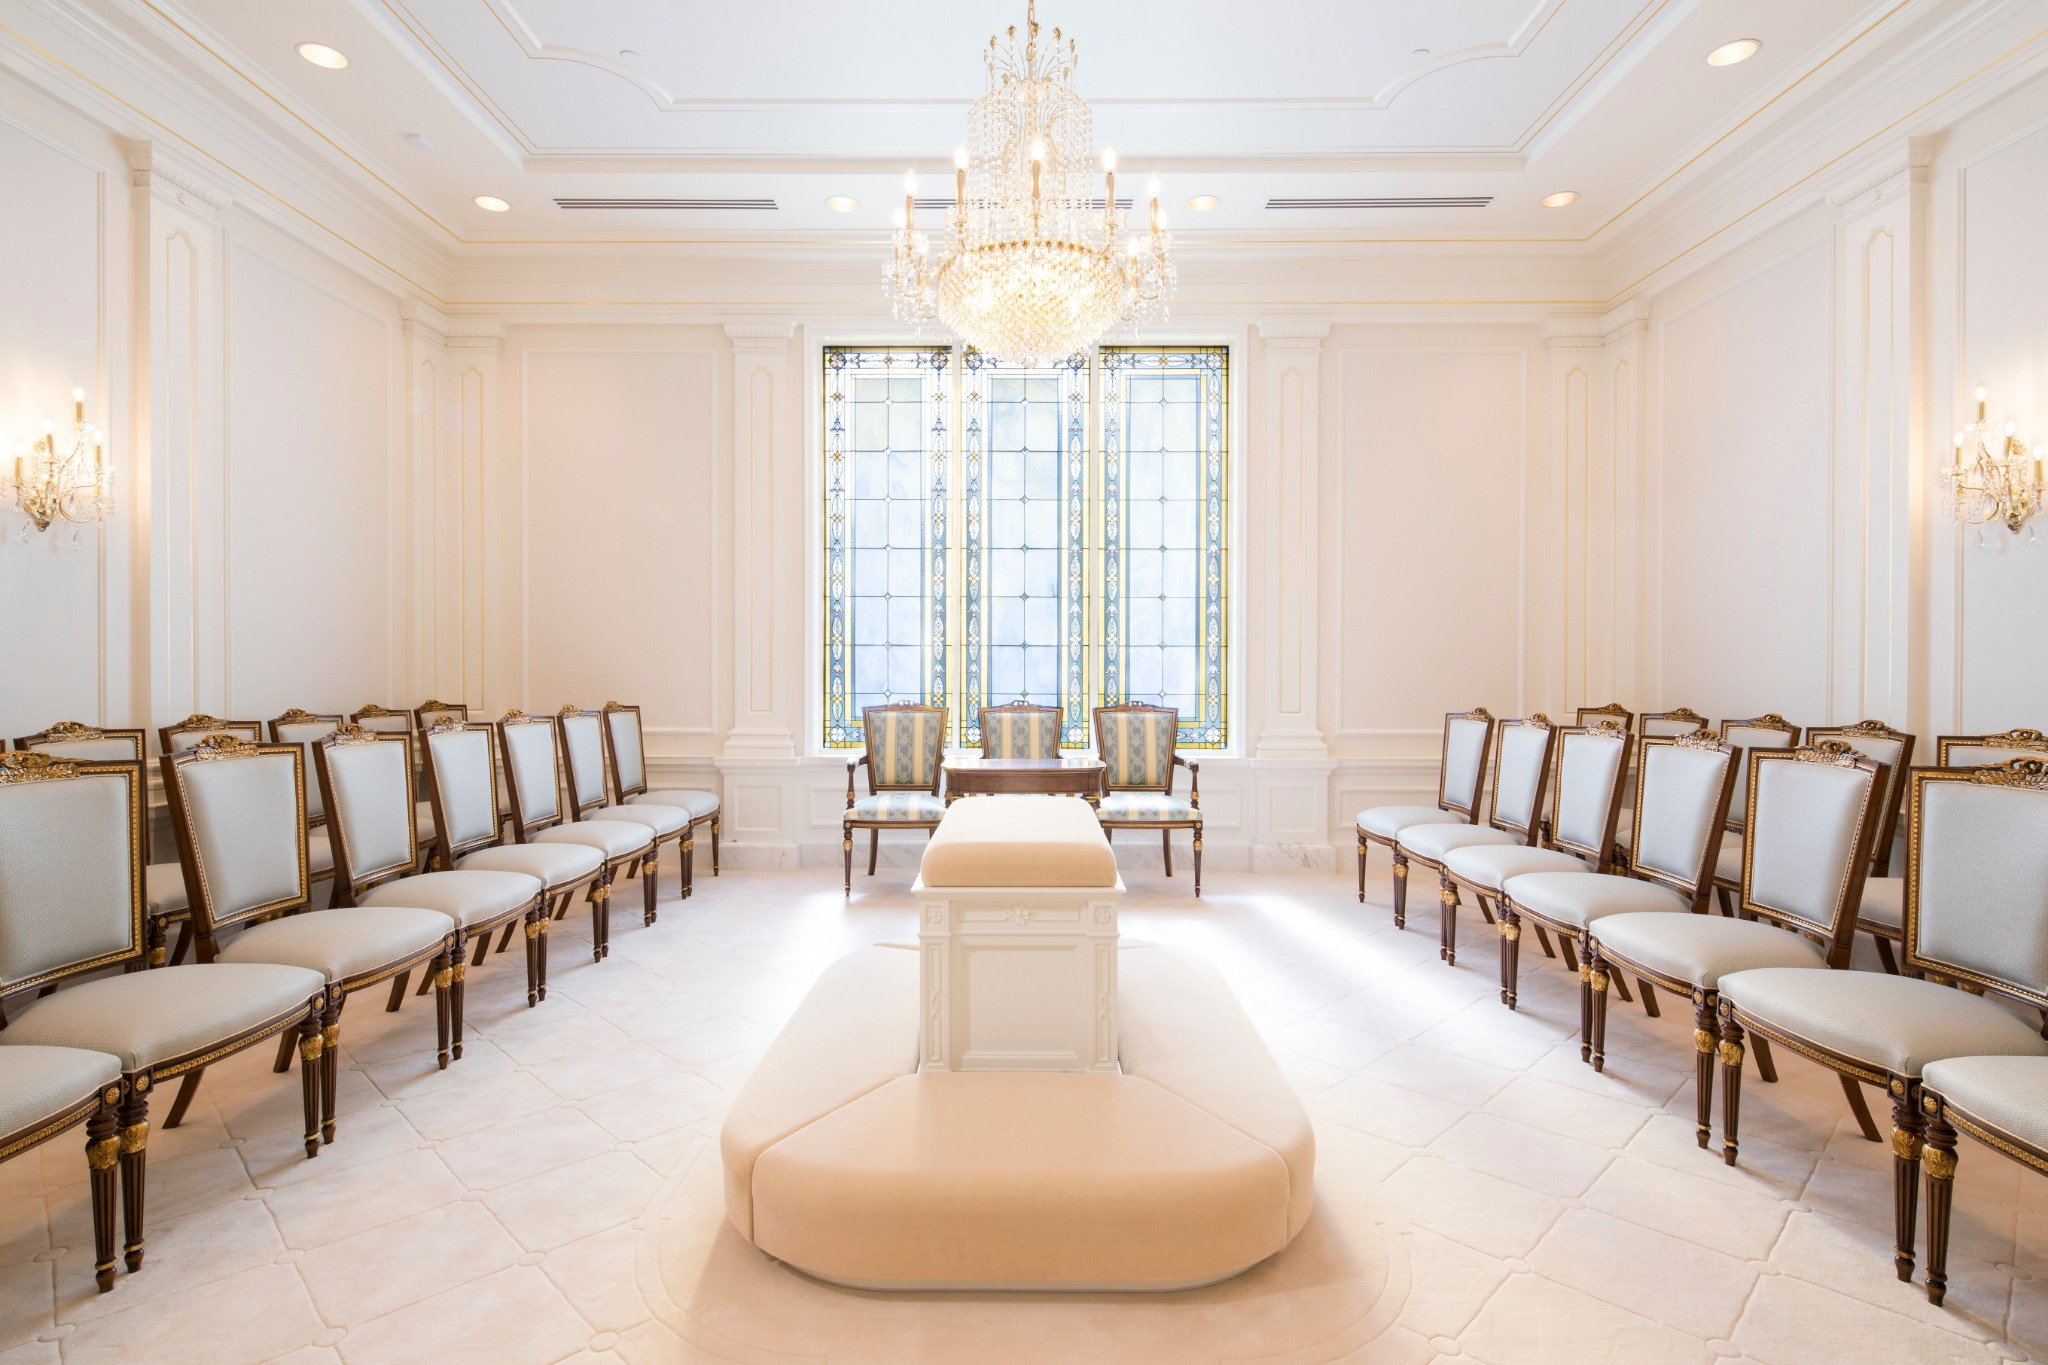 A sealing room in the Raleigh North Carolina Temple.